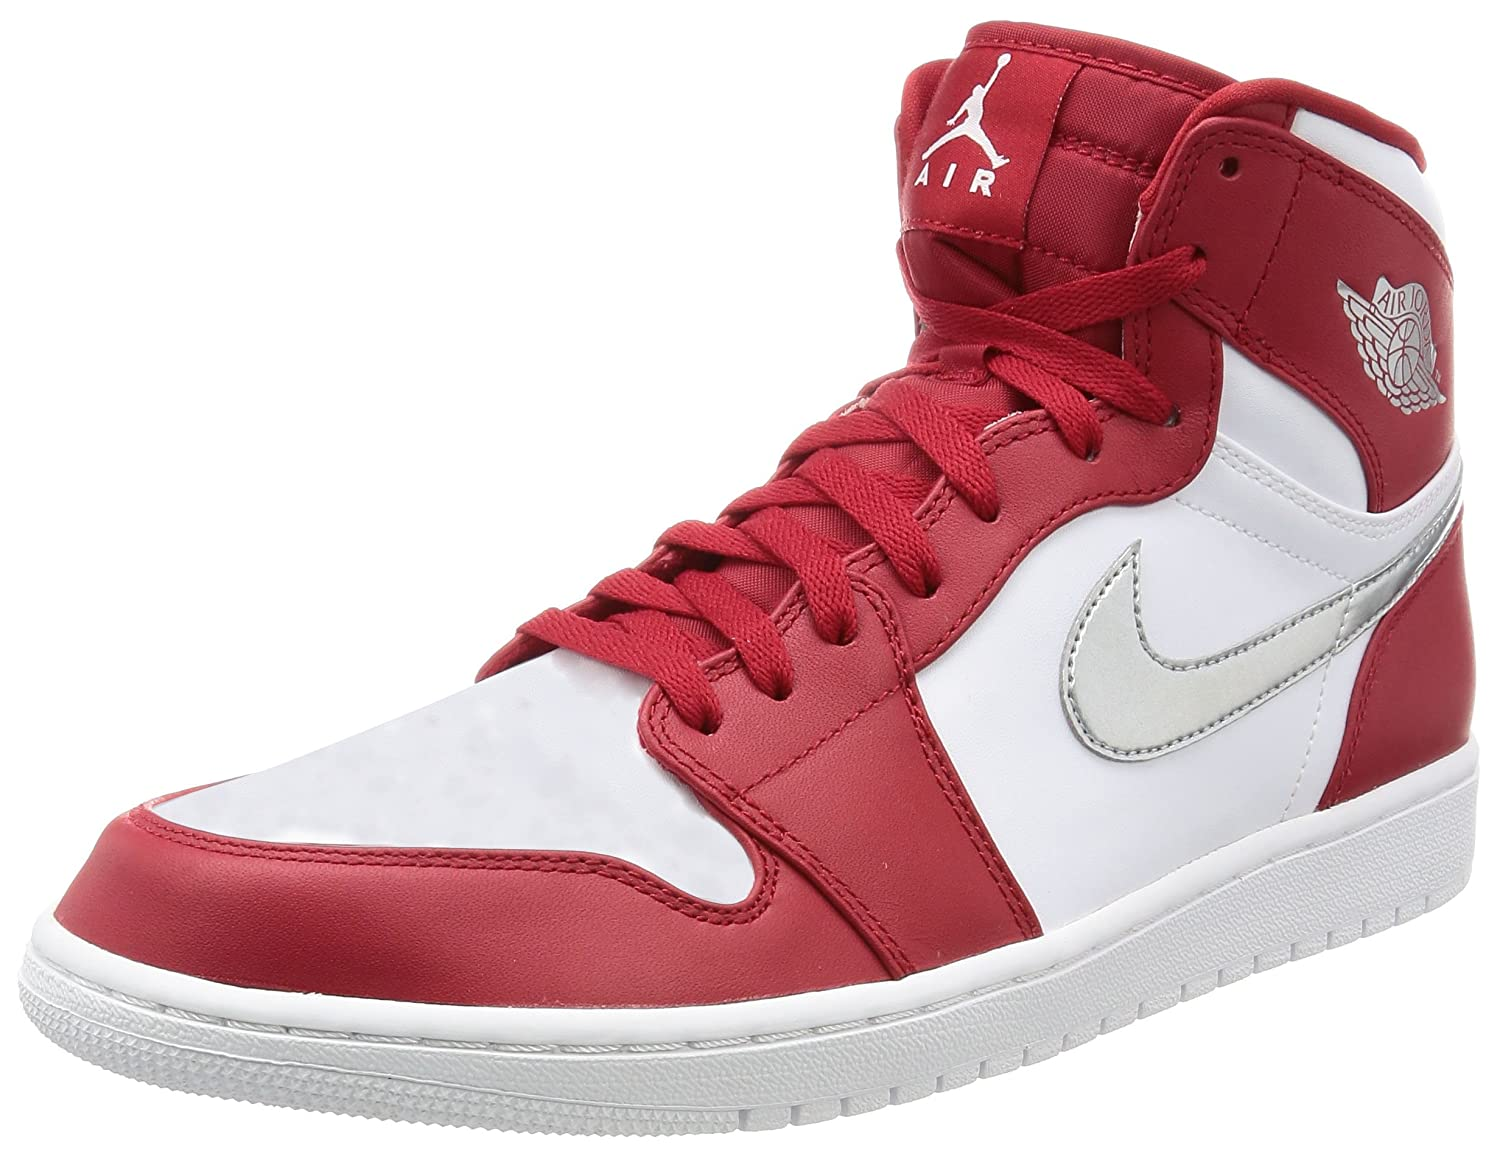 separation shoes dff9e 5b04d Amazon.com   Nike AIR JORDAN 1 RETRO HIGH mens basketball-shoes 332550-602 12  - GYM RED METALLIC SILVER-WHITE   Basketball